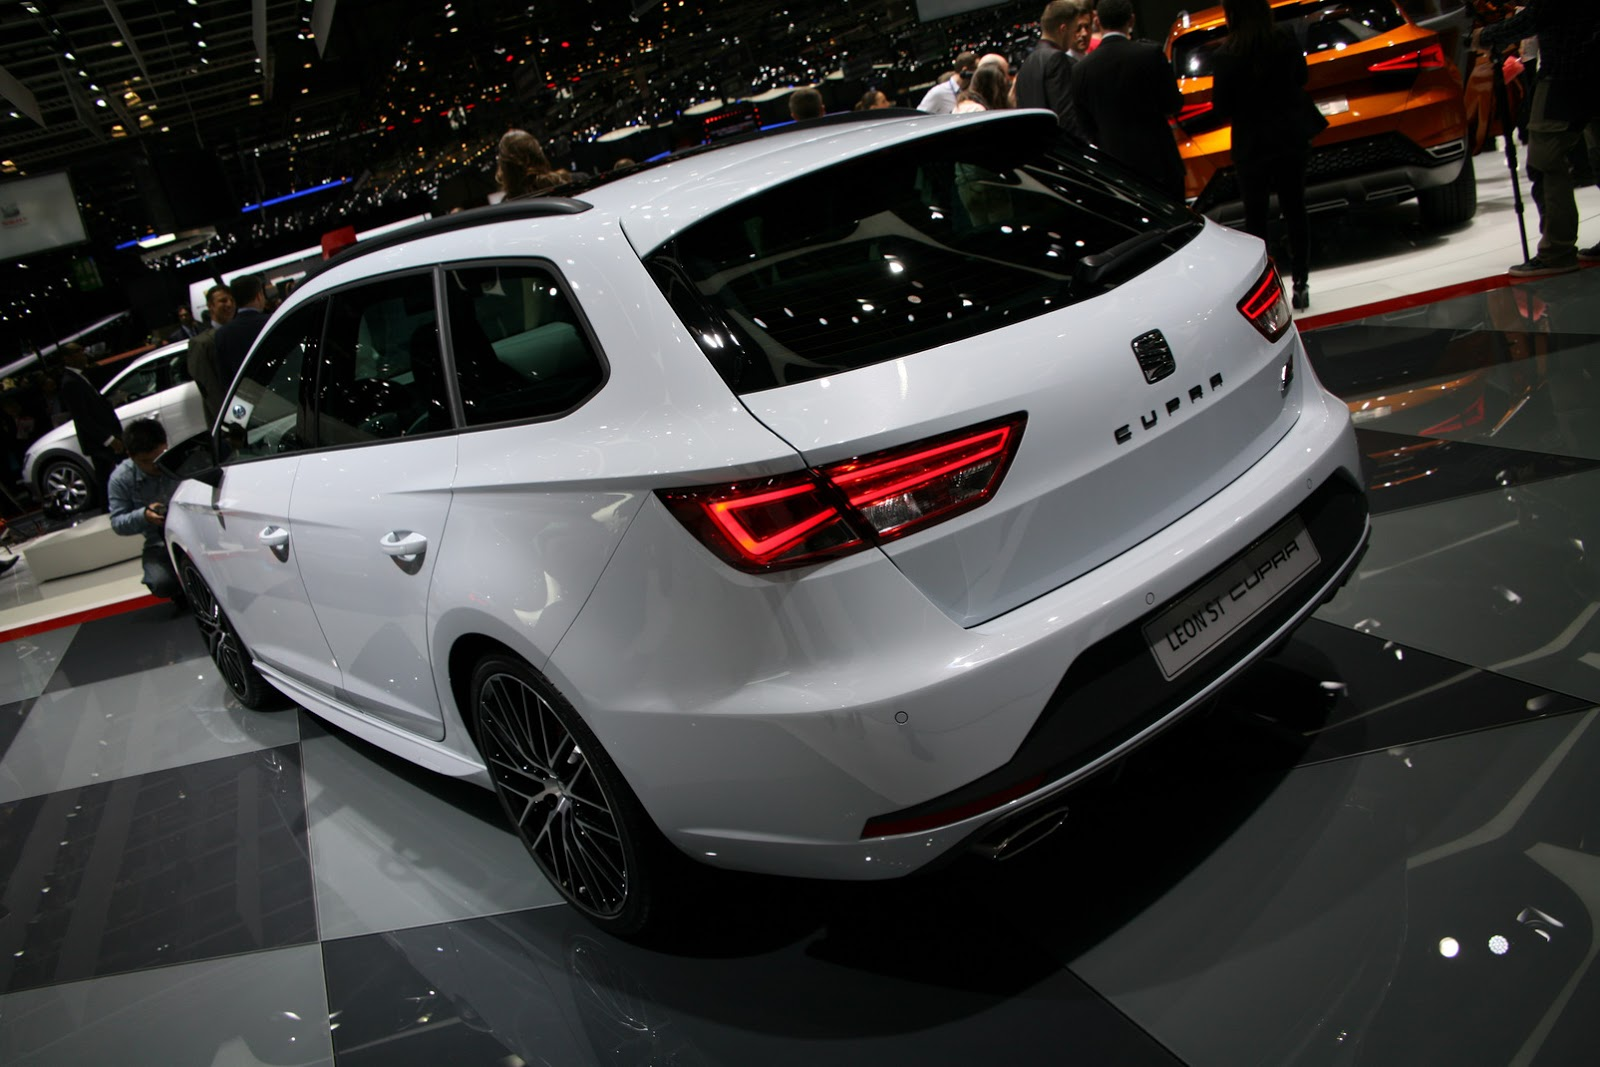 2015 seat leon st cupra 280 is a great family oriented hot hatch in geneva autoevolution. Black Bedroom Furniture Sets. Home Design Ideas